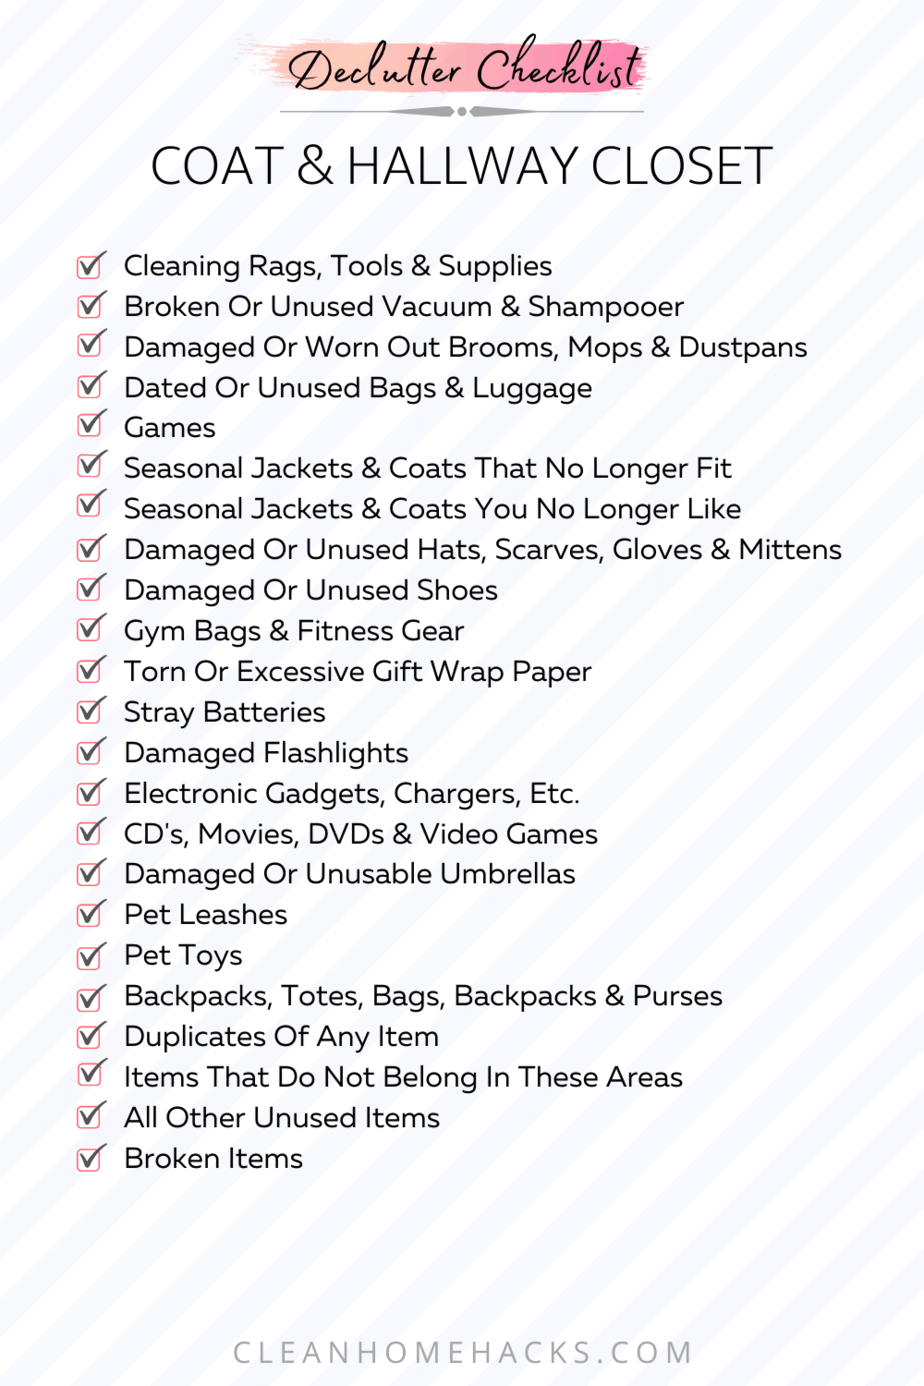 itemized list to declutter coat and hallway closet